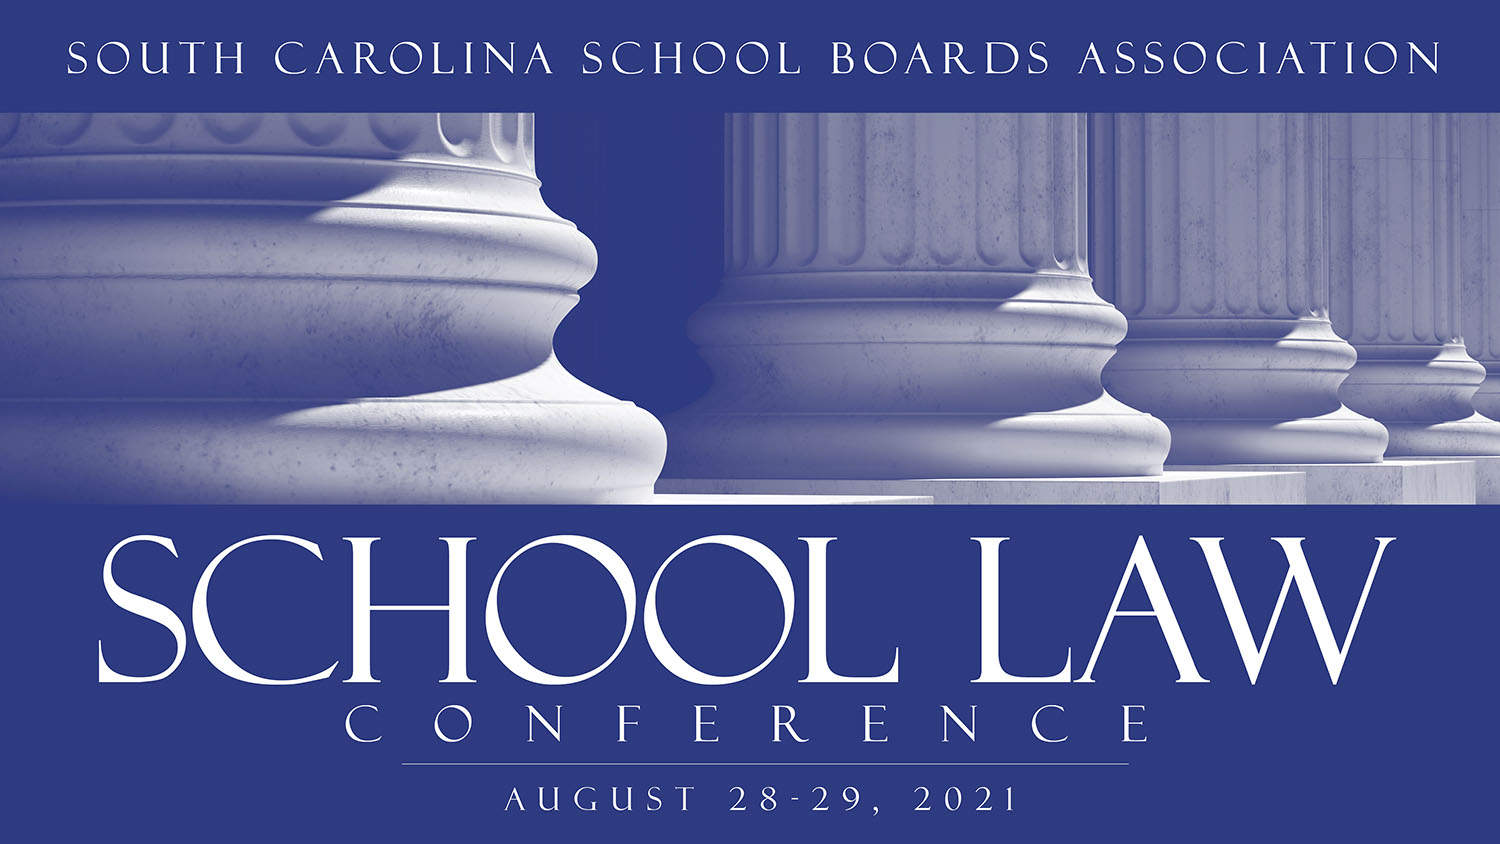 2021 SCHOOL LAW CONFERENCE